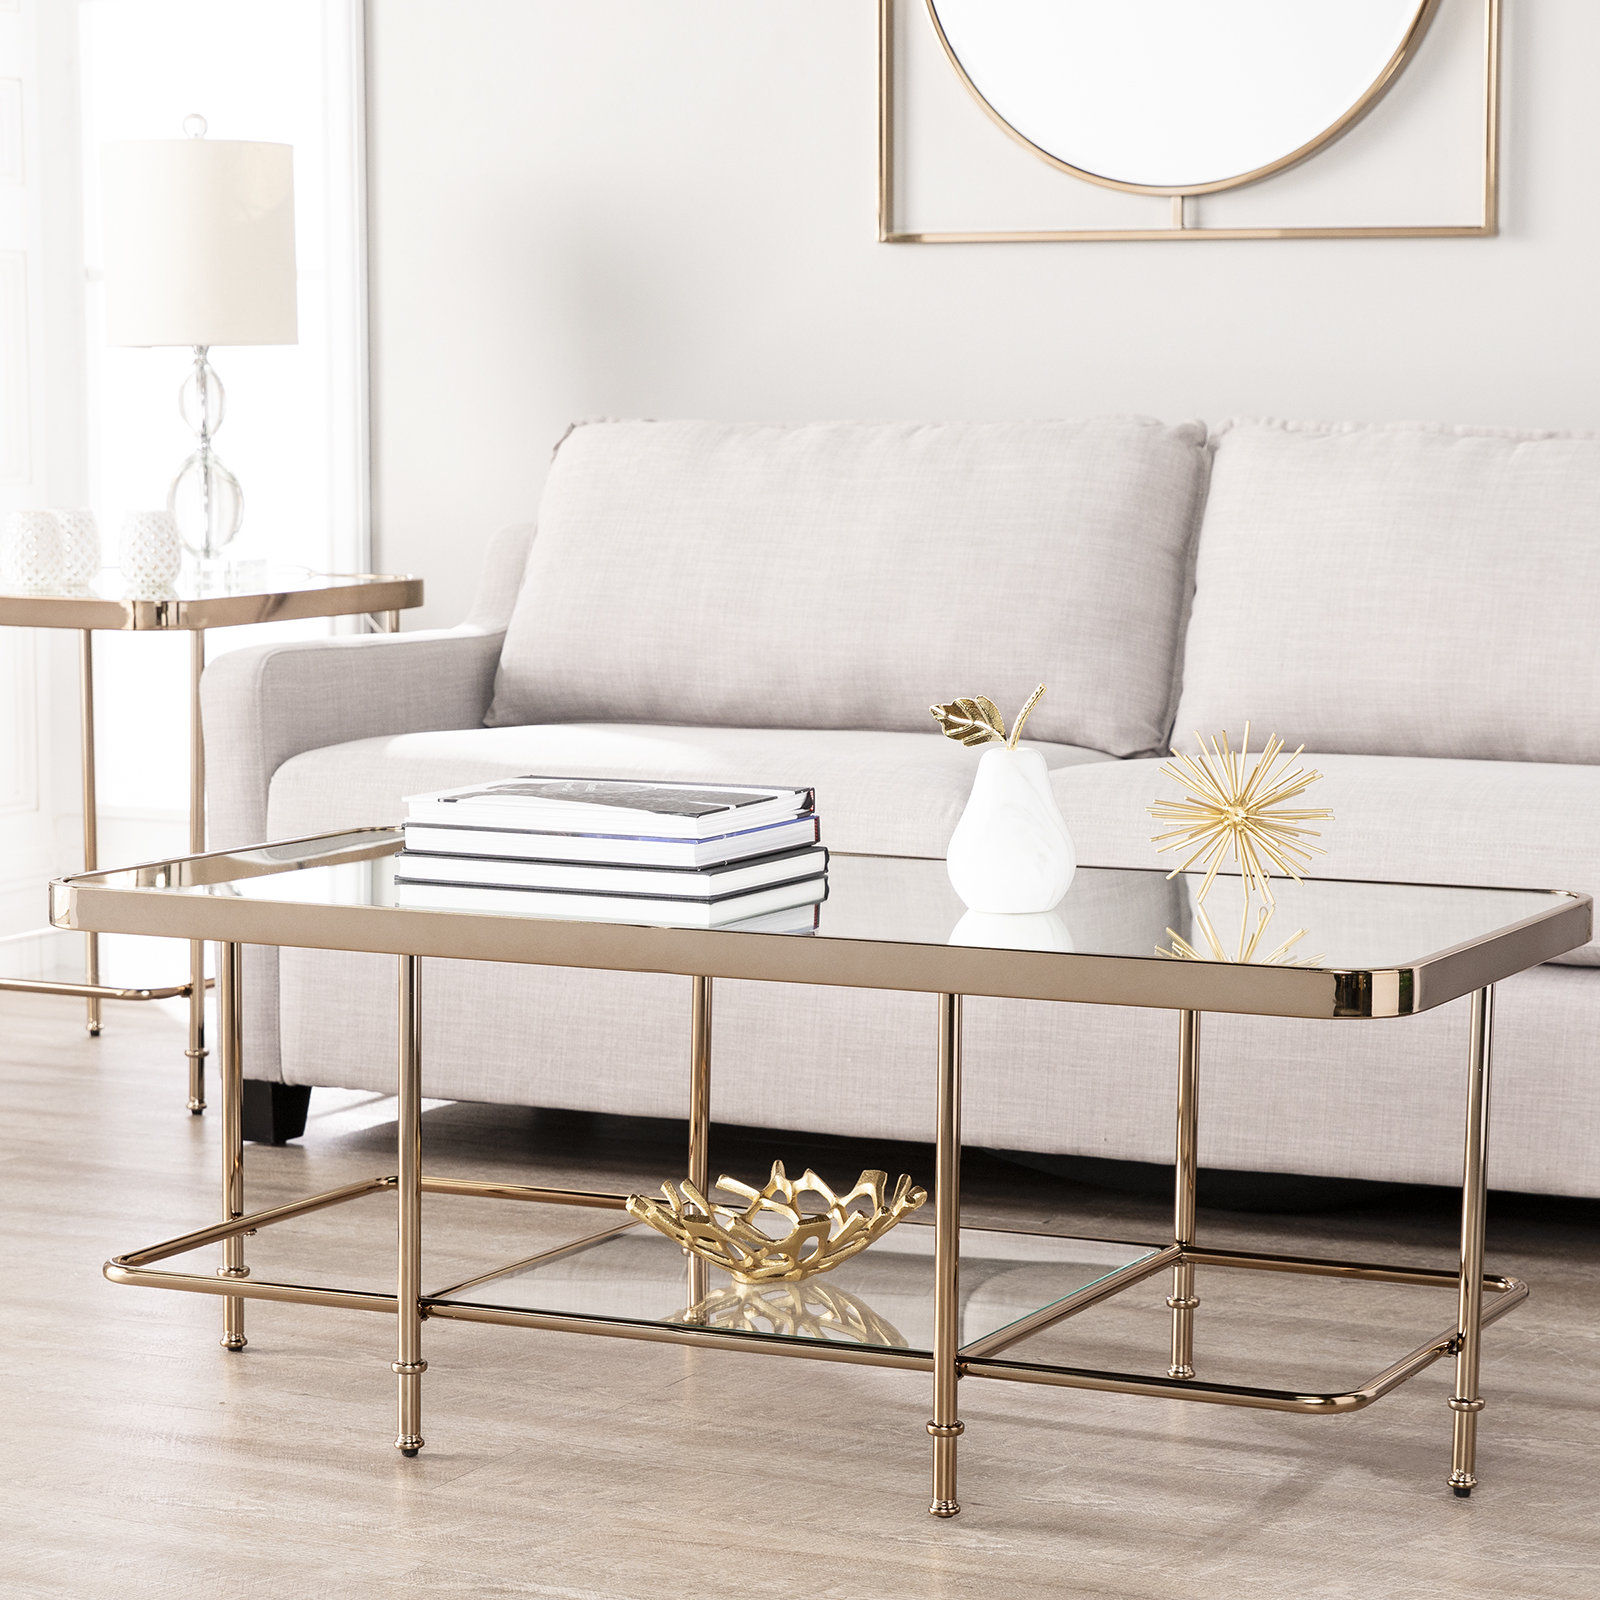 mirror coffee table sets you love kimberlin mirrored piece set diamond accent furniture for entrance foyer sofa small space living room pottery barn square astoria light colored